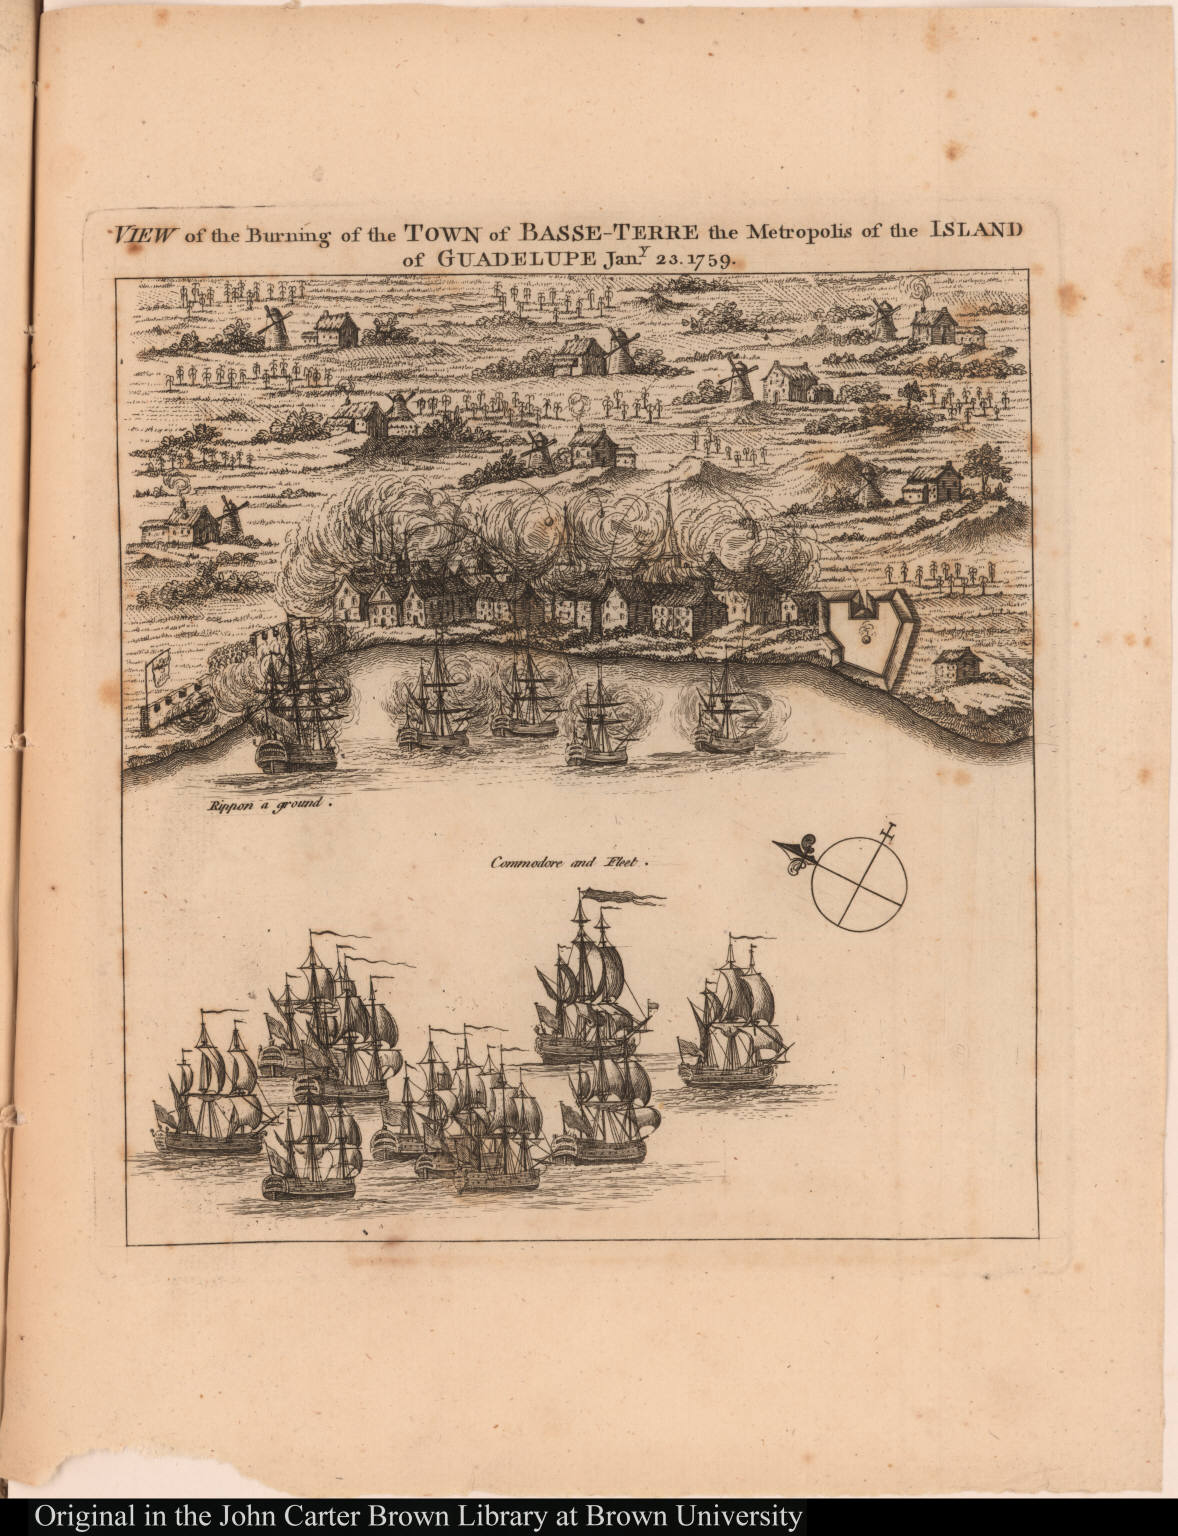 View of the Burning of the Town of Basse-Terre the Metropolis of the Island of Guadelupe Jany. 23, 1759.